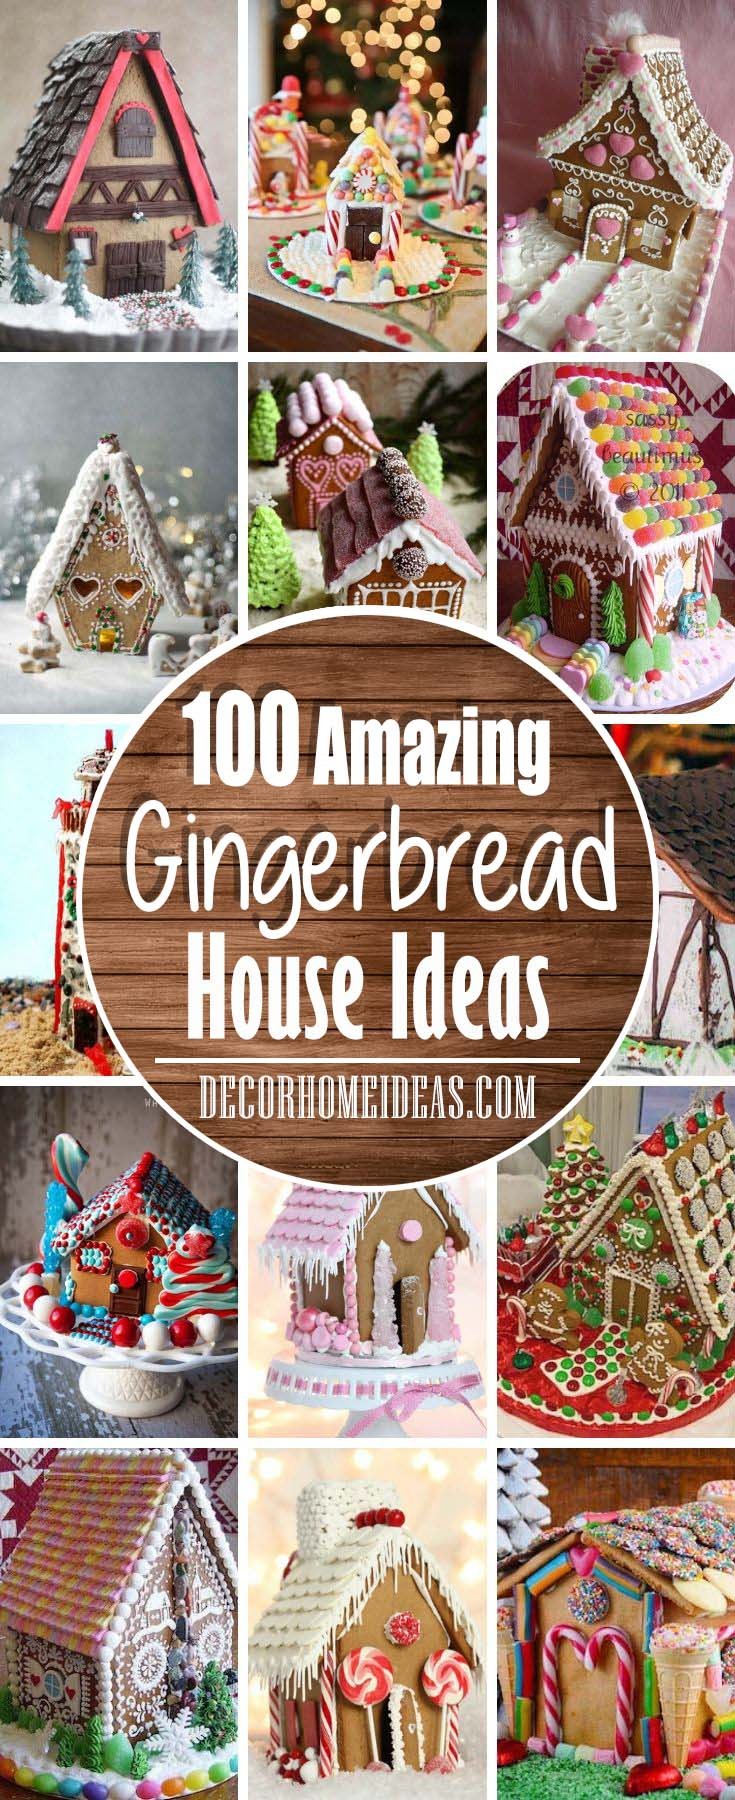 Best Gingerbread House Ideas #gingerbread #house #decorhomeideas